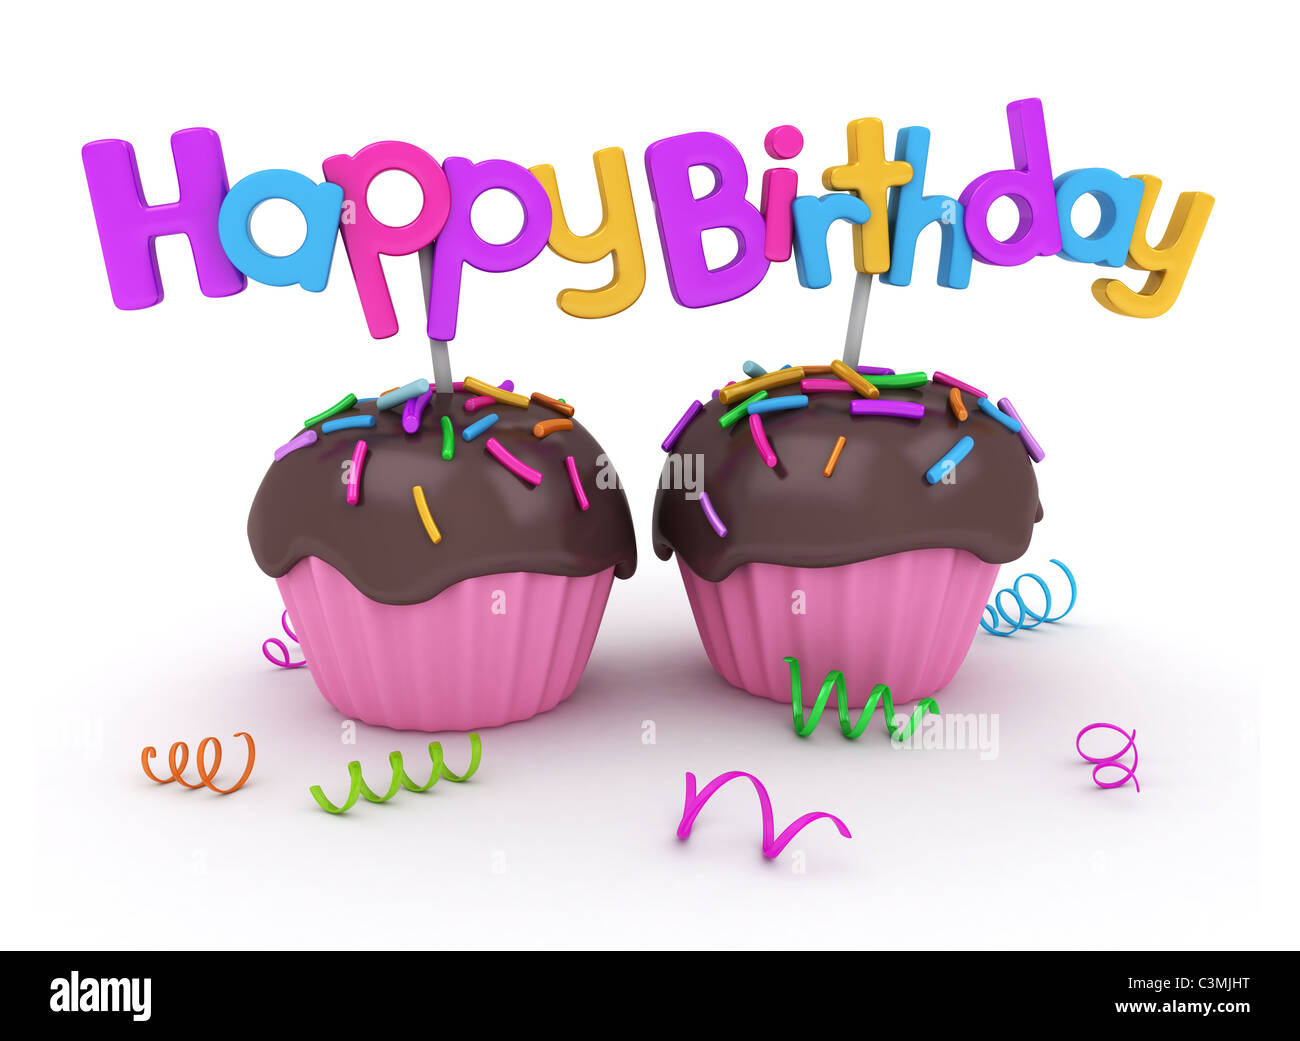 3d illustration of twin cupcakes with birthday greetings attached 3d illustration of twin cupcakes with birthday greetings attached m4hsunfo